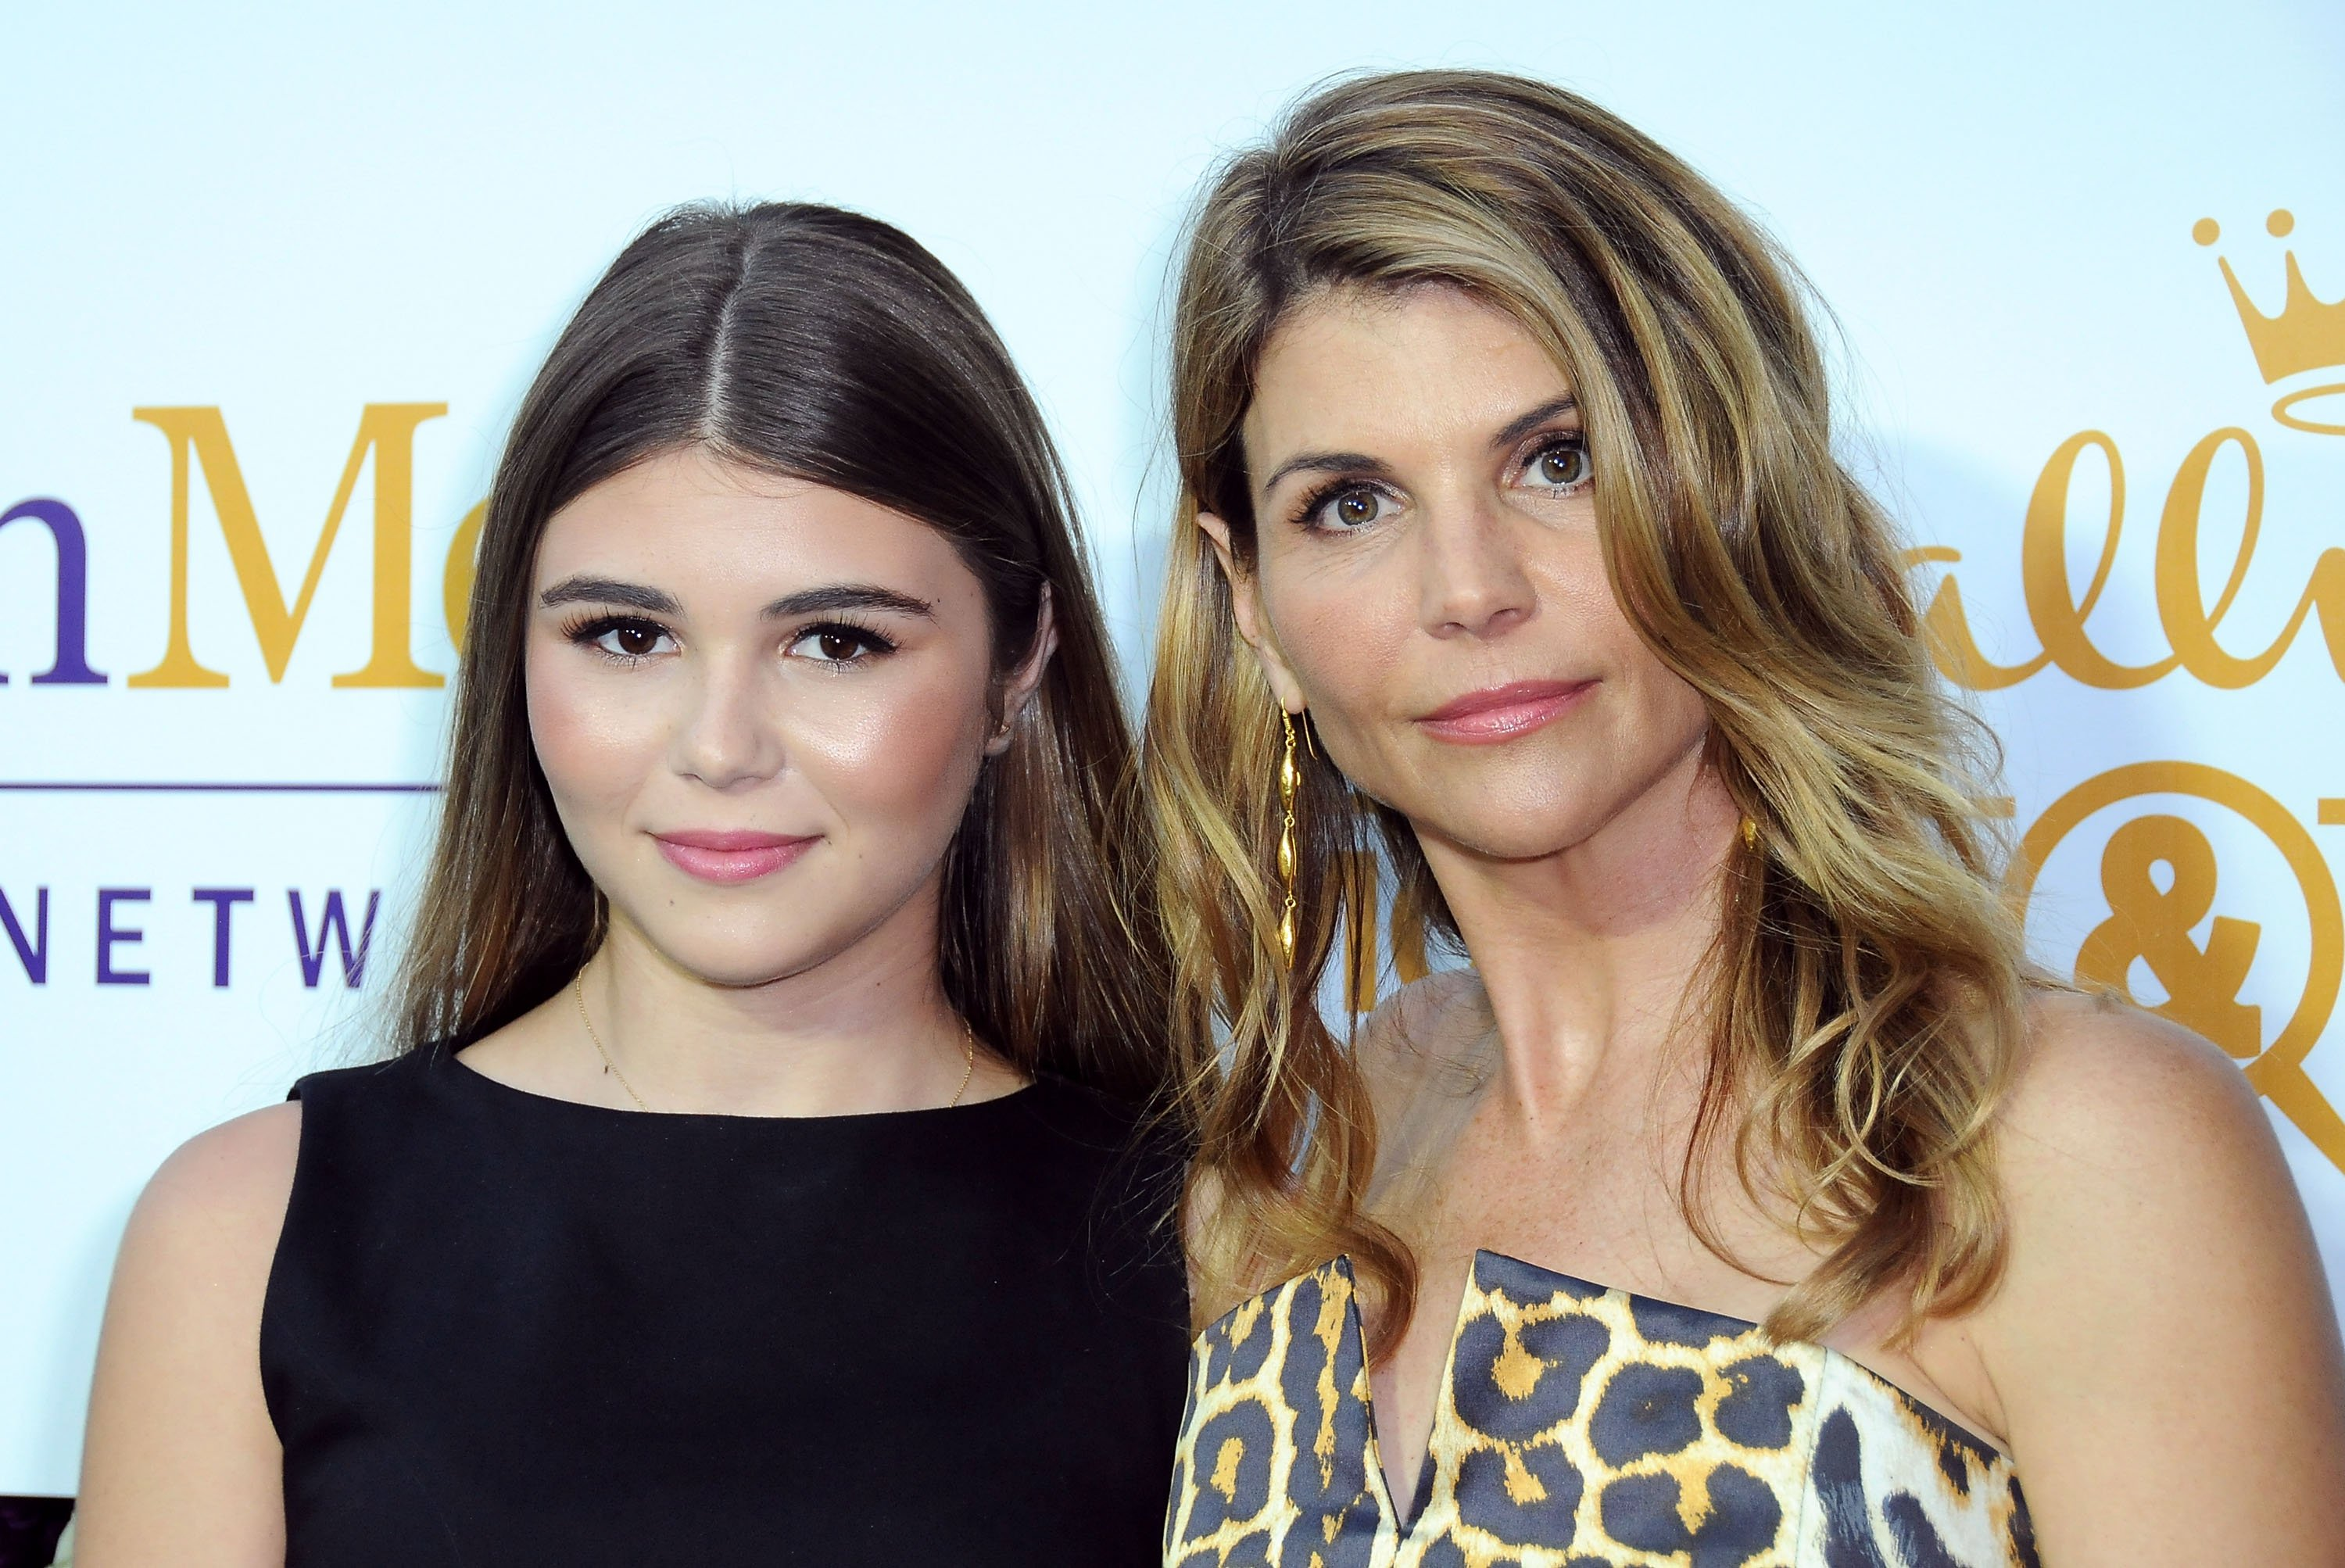 Lori Loughlin and daughter Olivia Jade Giannulli at a Hallmark event | Photo: Getty Images